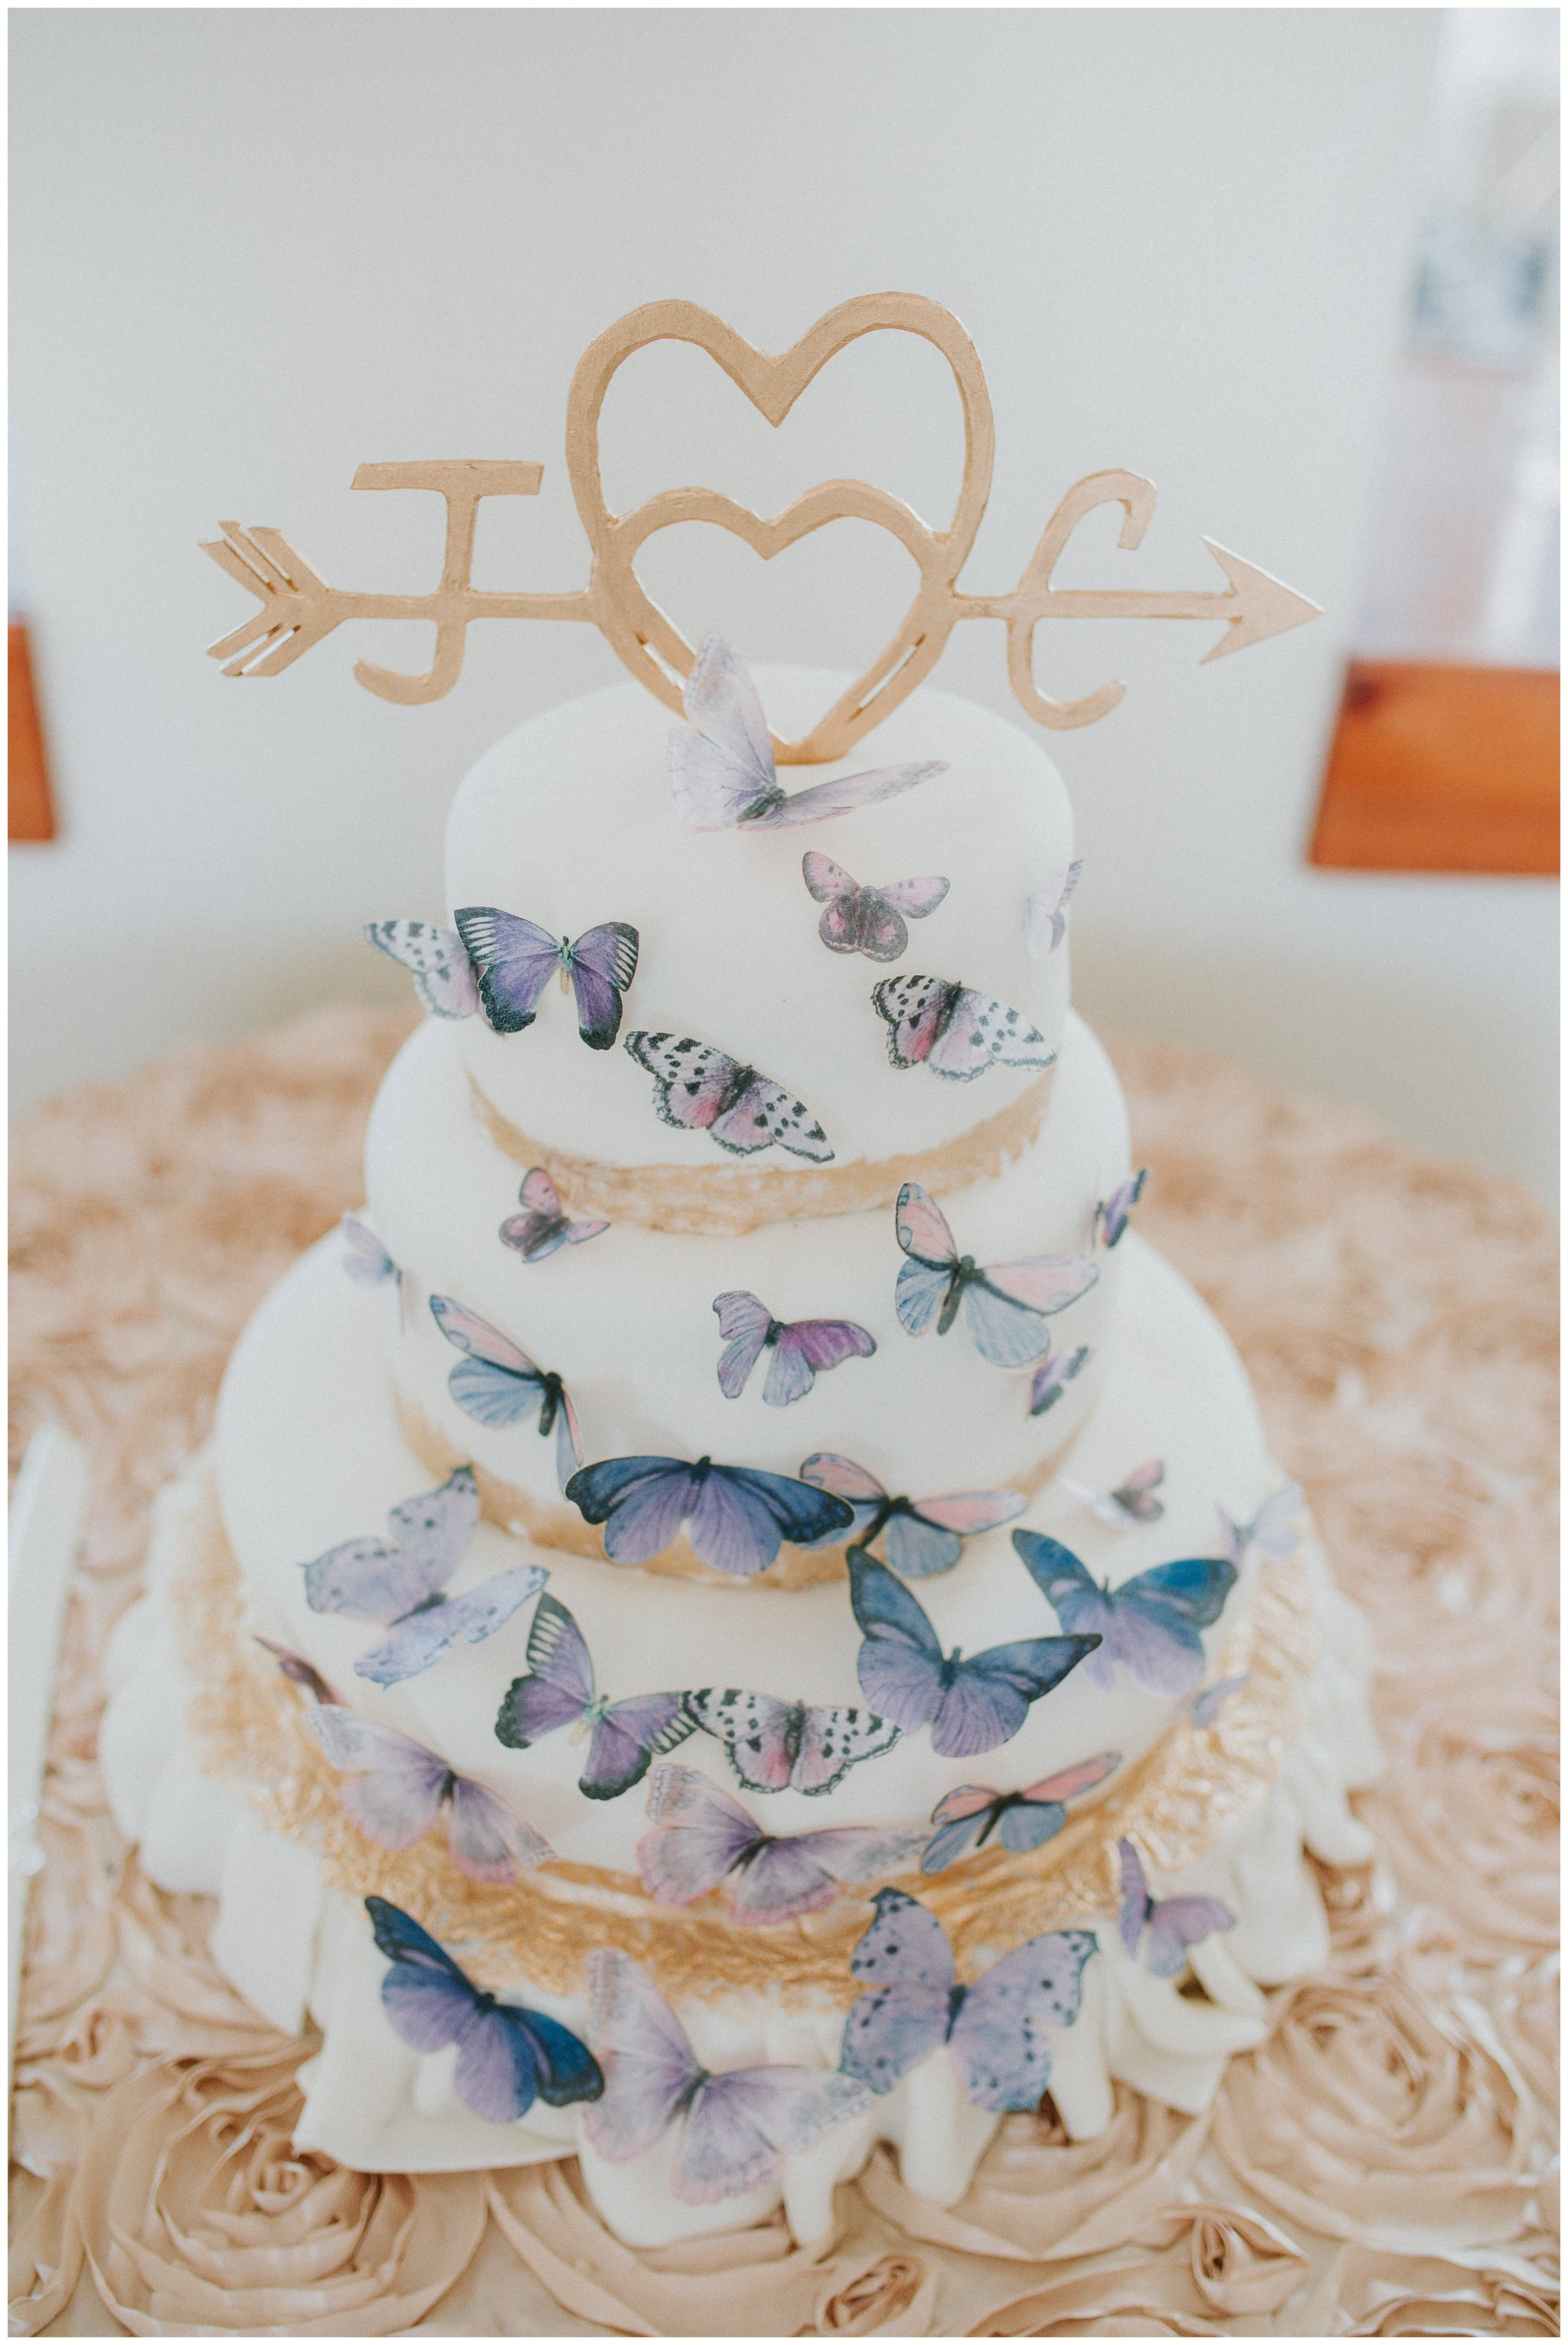 Christine made this cake topper from carved wood! Amazing!